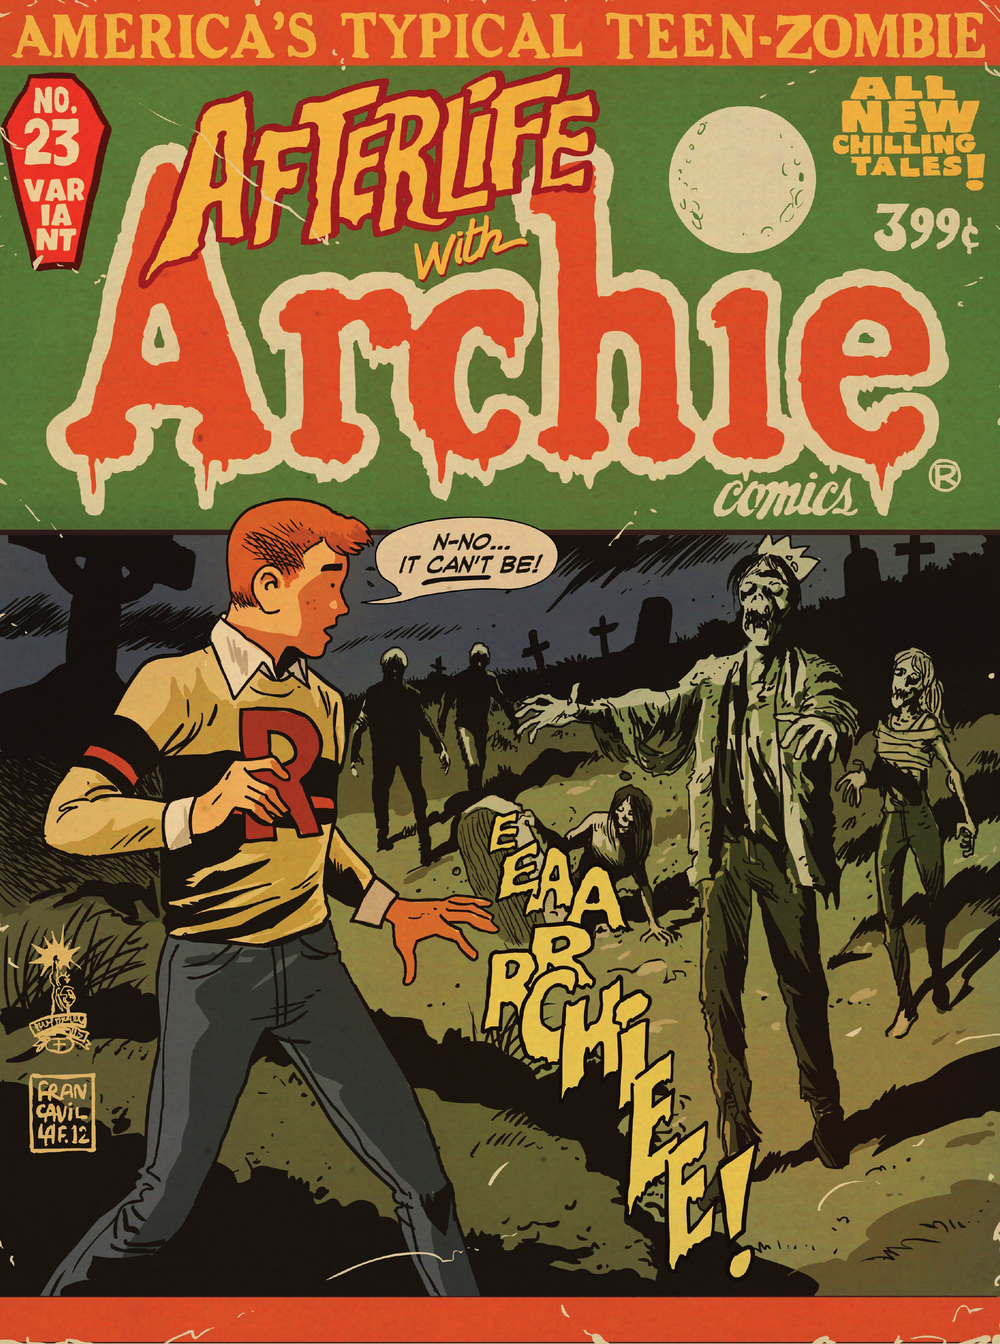 archie comics getting feature film adaptation with zombies